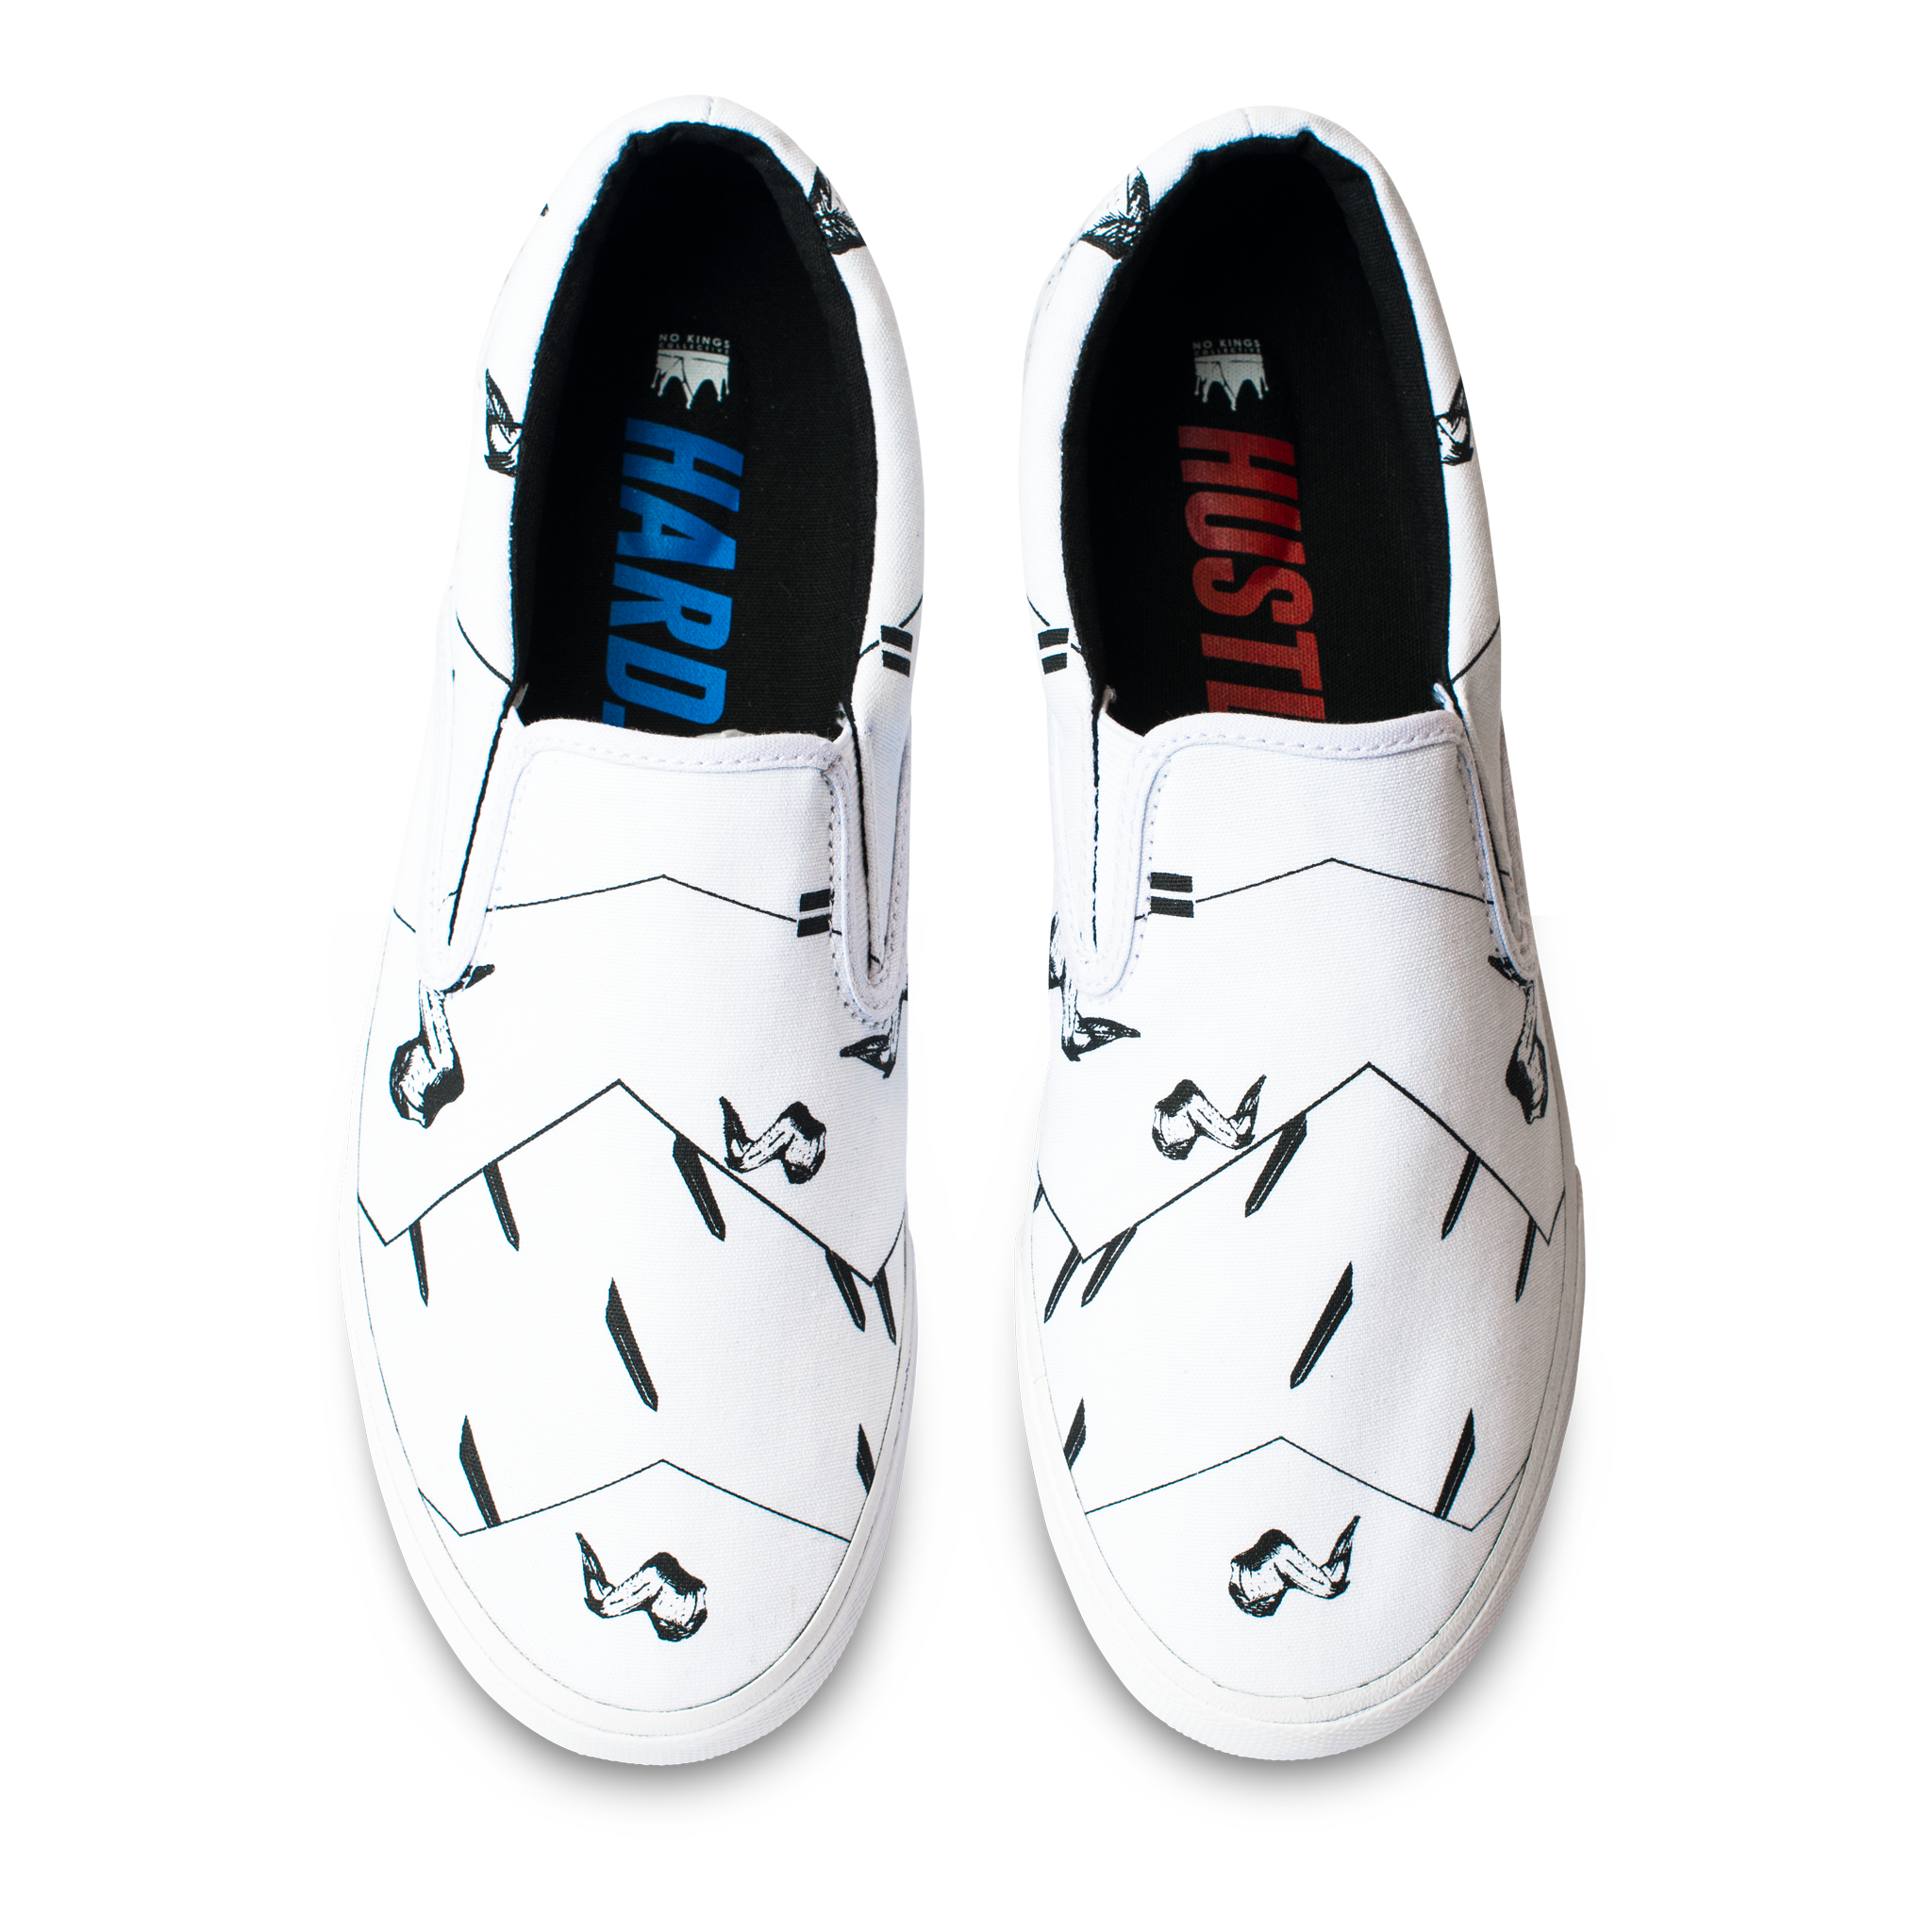 Bucketfeet 7s No Kings Collective_men_4.png